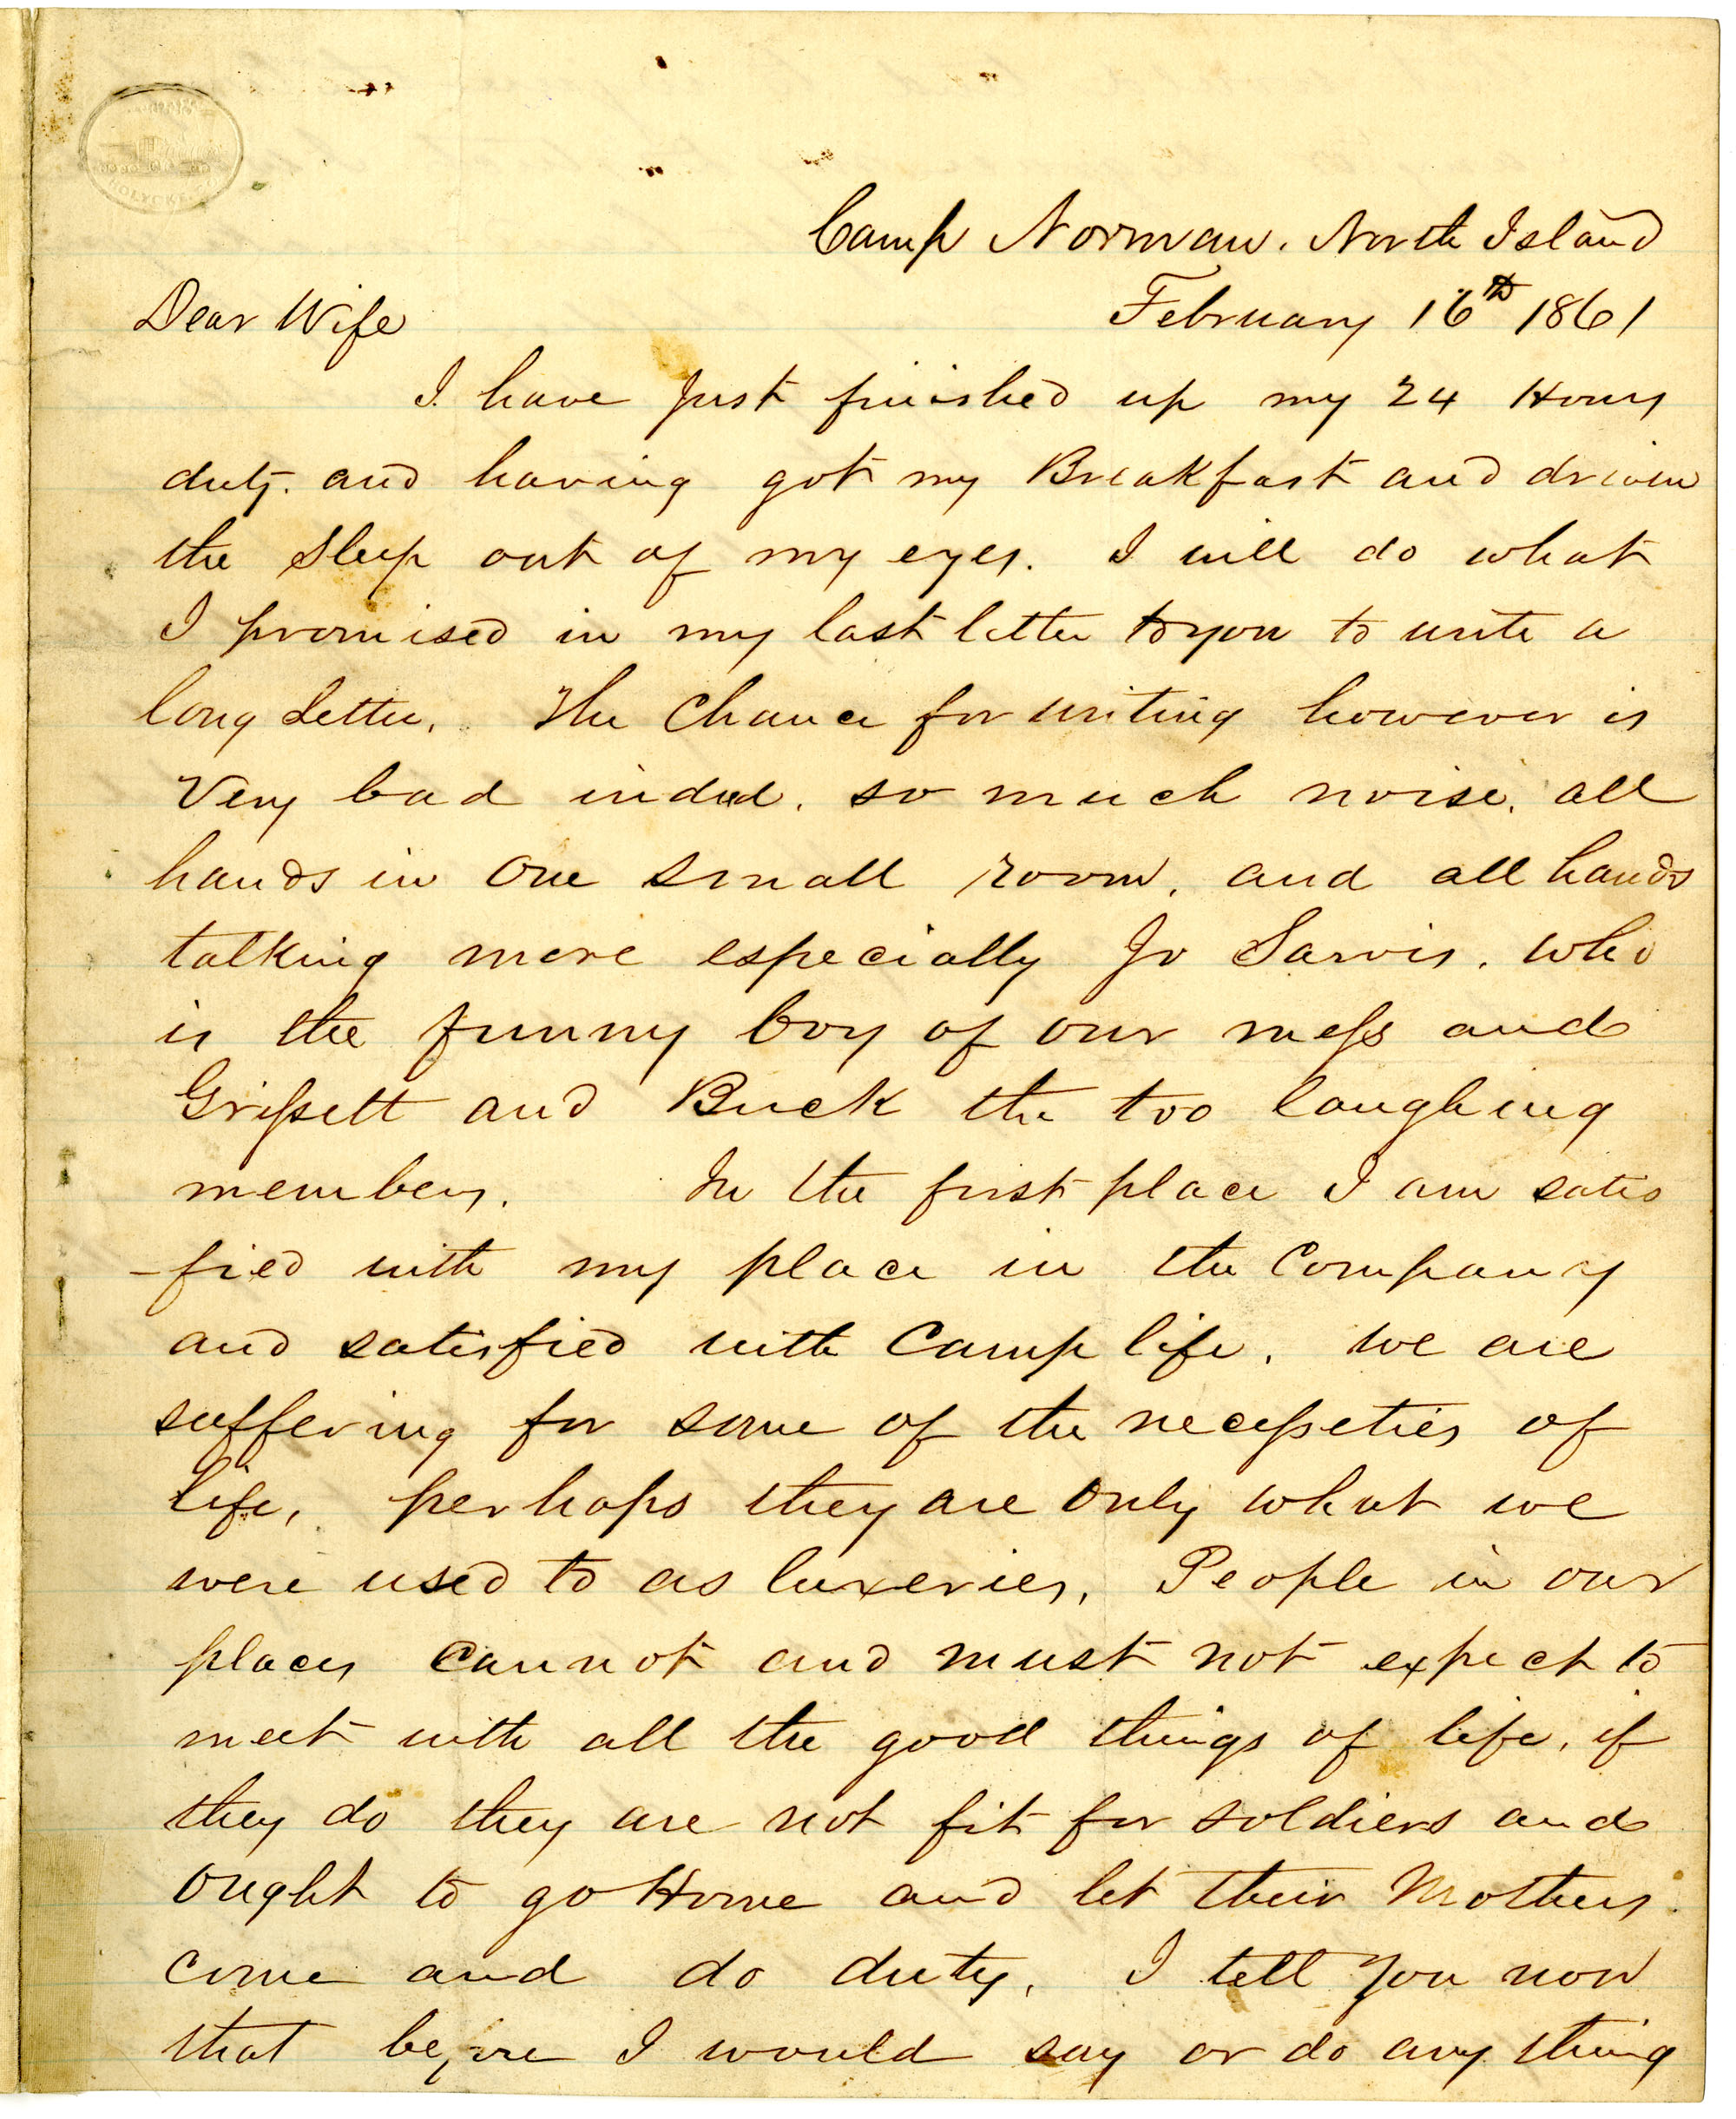 Letter from John R. Beaty to his wife Melvina, February 16, 1861